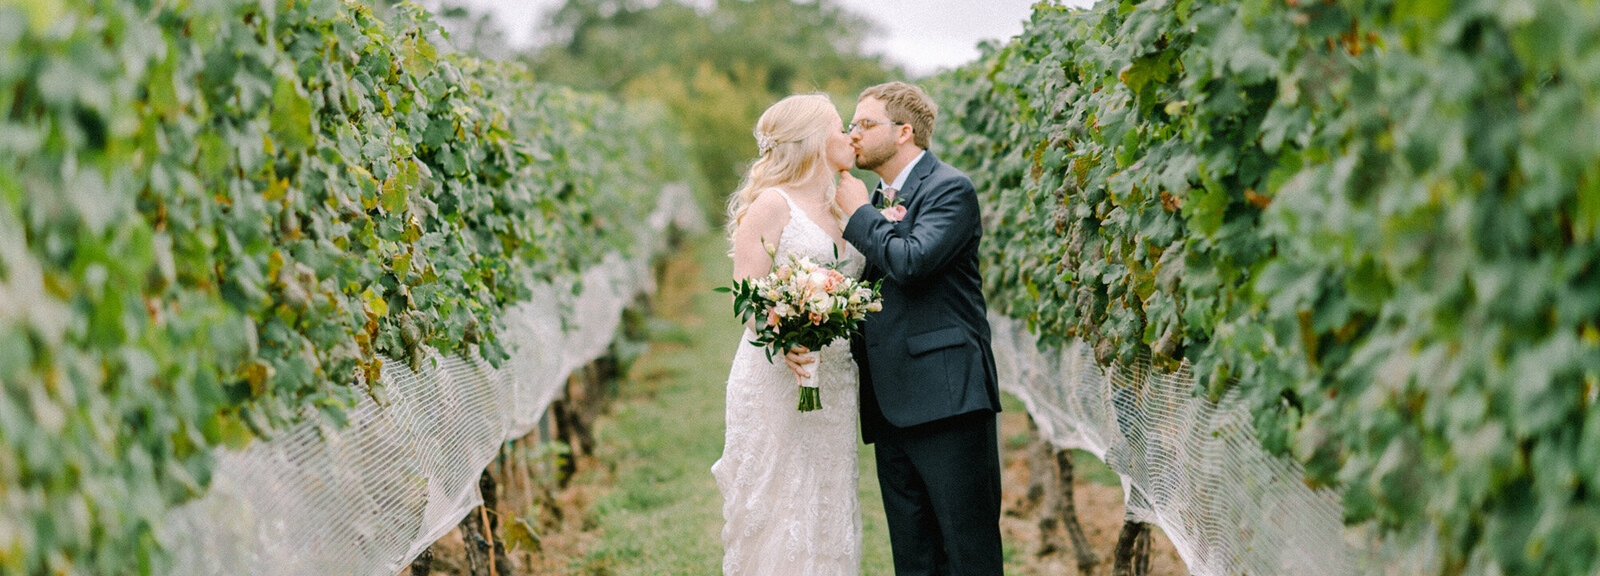 morais-vineyard-wedding-photographer